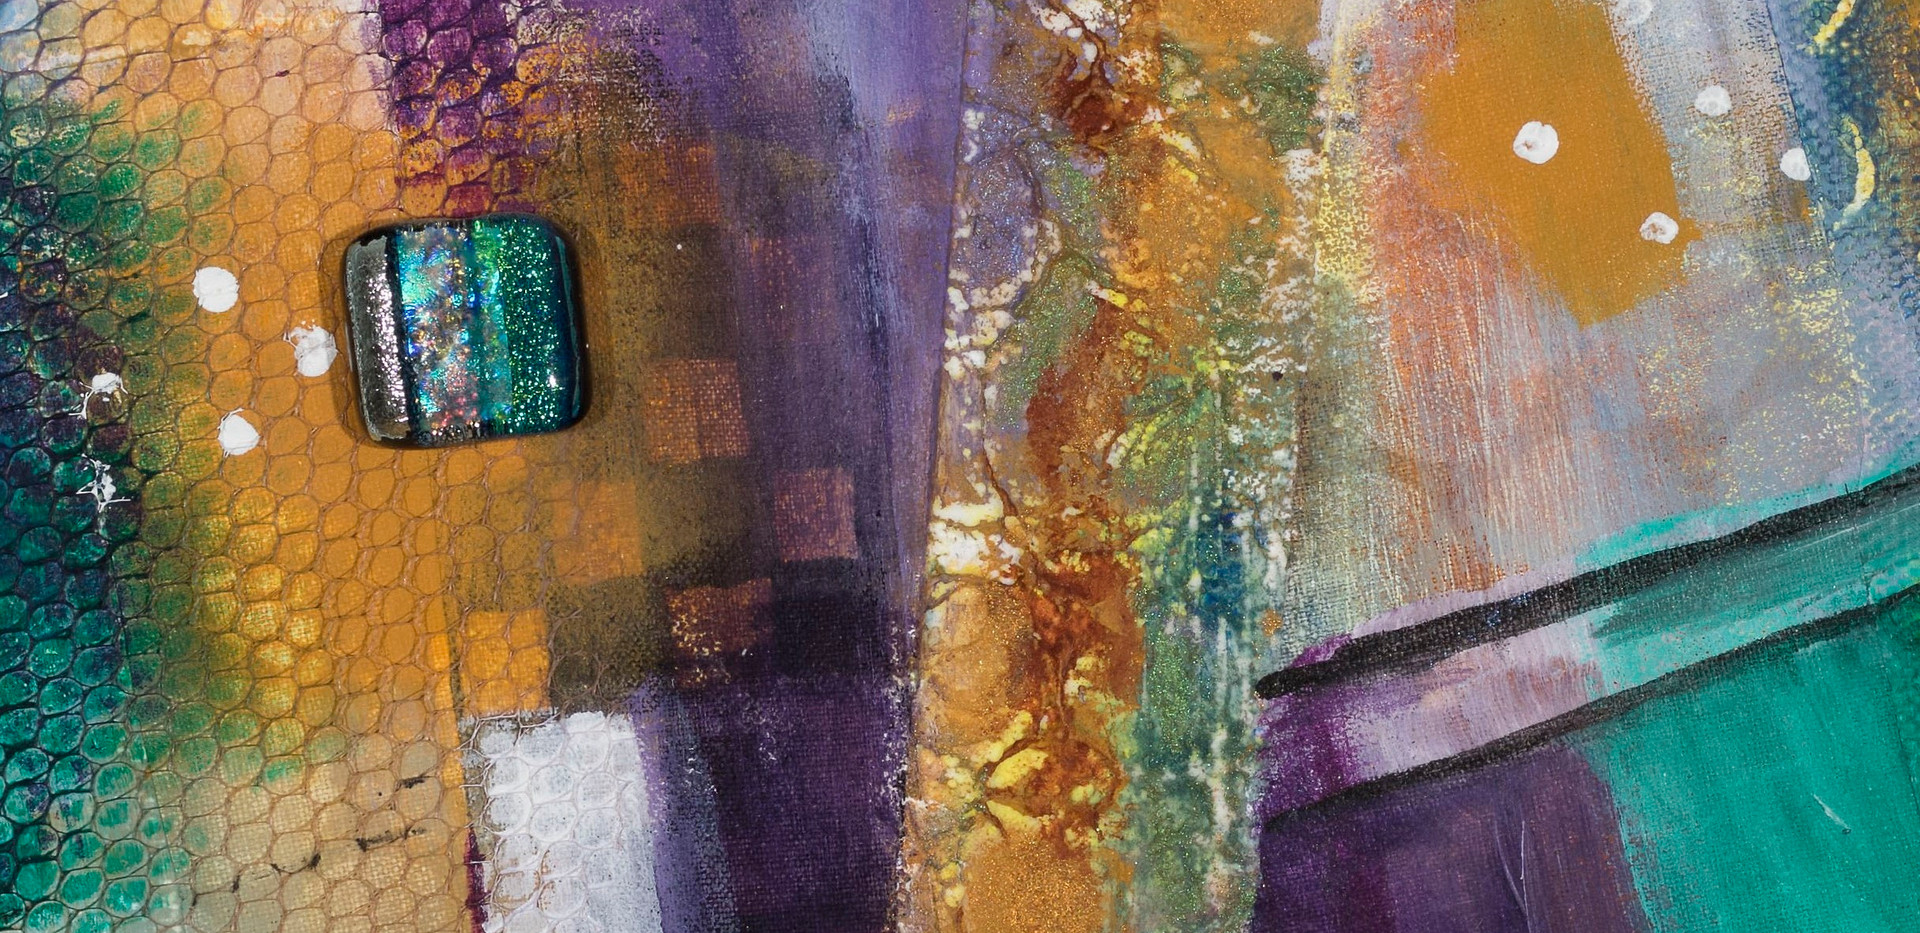 11-Mixed Media Collage 8 x 8-detail3.jpg